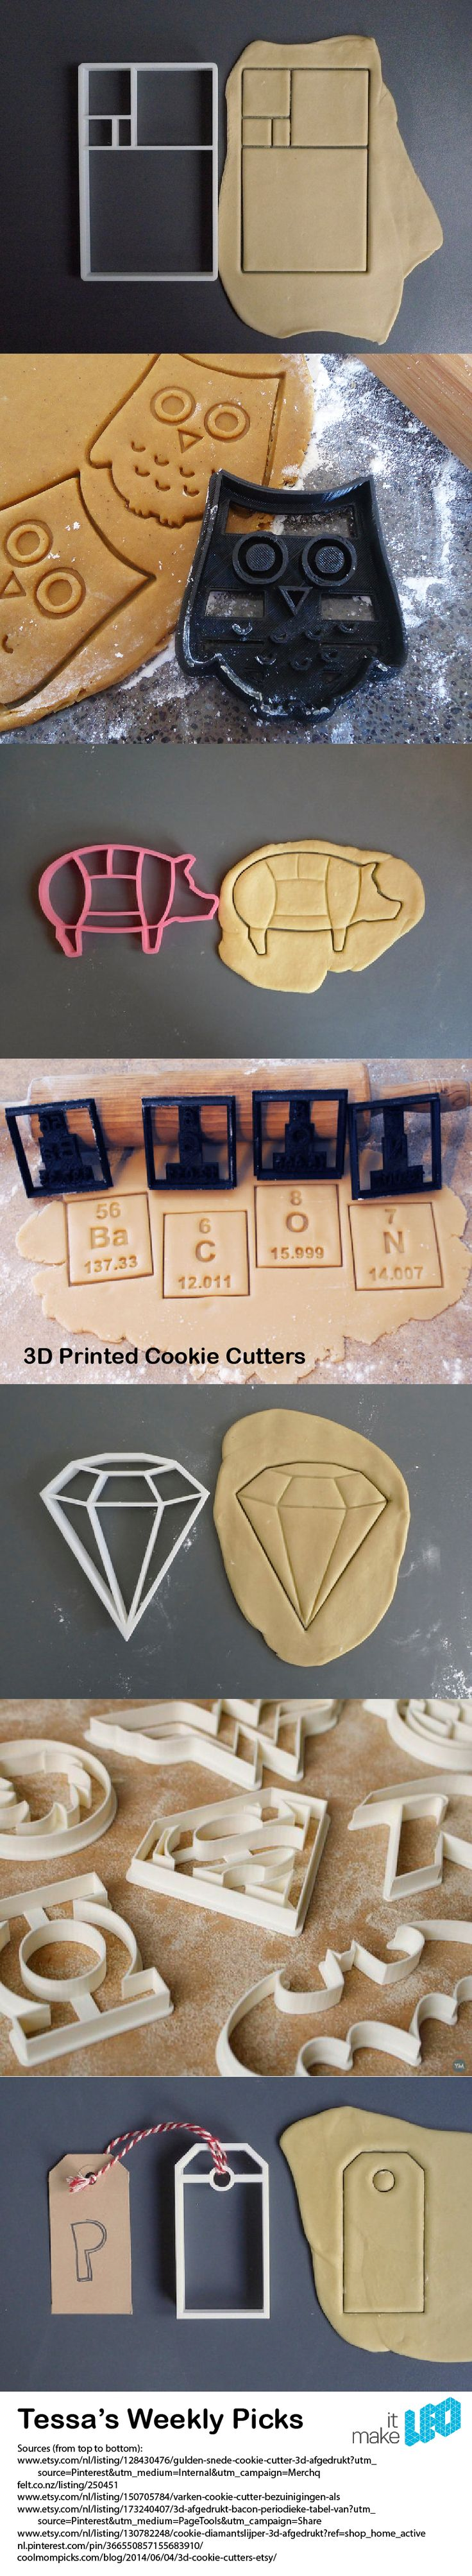 Tessa's Weekly Picks – 3D Printed Cookie Cutters.                                                                                                                                                                                 More